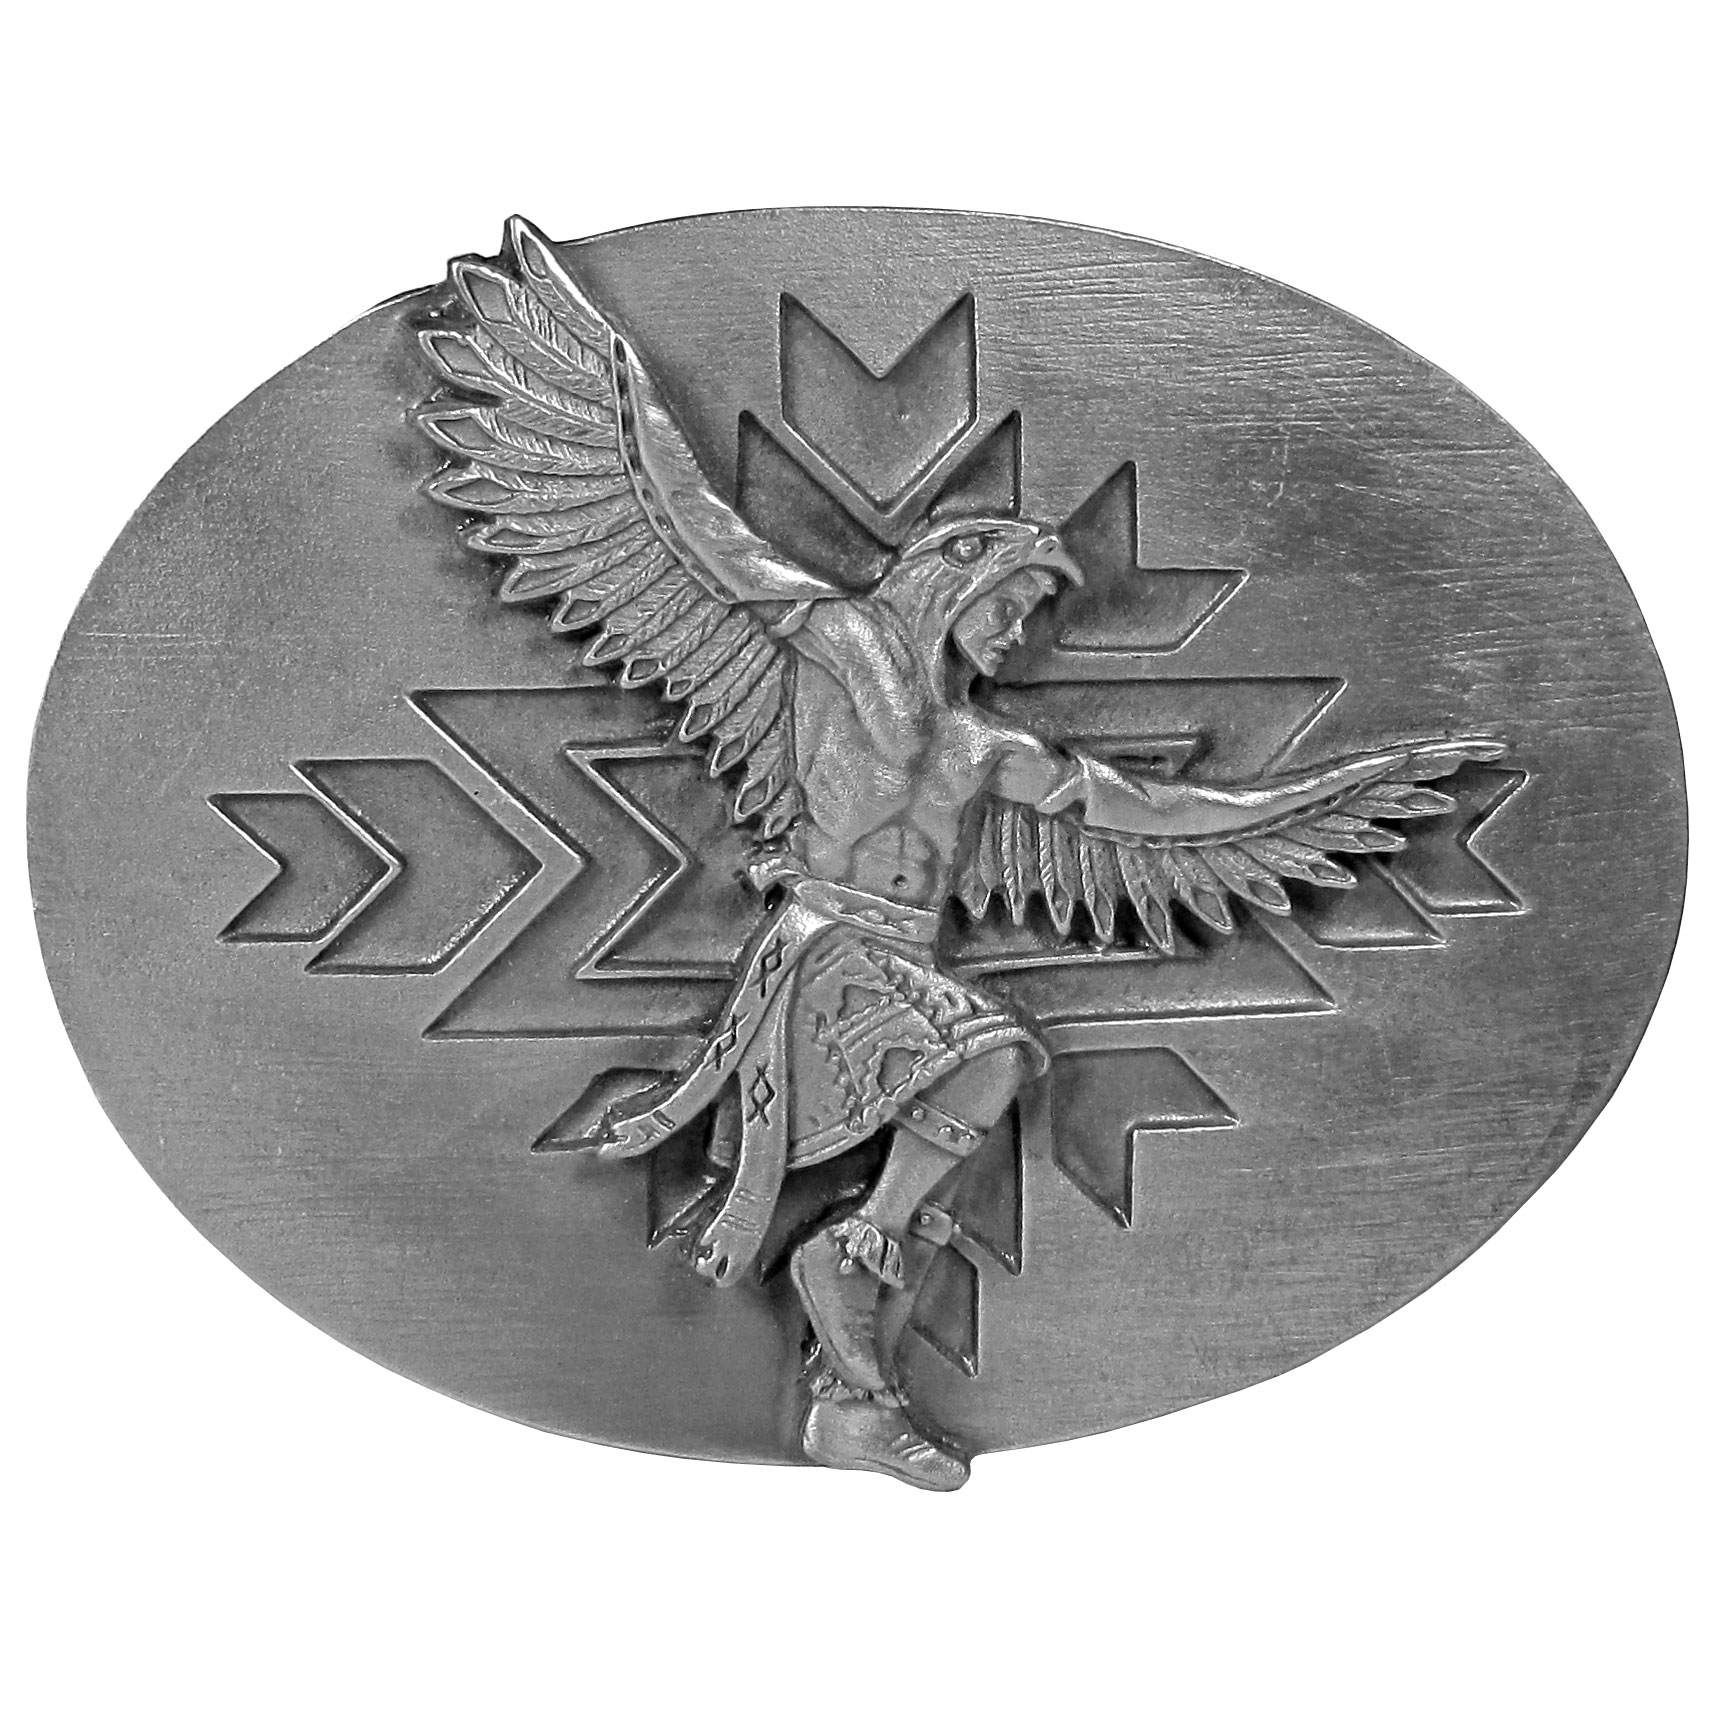 "Indian Dancer Antiqued Belt Buckle - This exquistely designed buckle has an image of a Native American dancer with wings on his arms, in full costume.  In the background there is a Native American symbol. This beautiful carved buckle is made of fully cast metal with a standard bale that fits up to 2"" belts.  Siskiyou's unique buckle designs often become collectors items and are unequaled with the best craftsmanship."